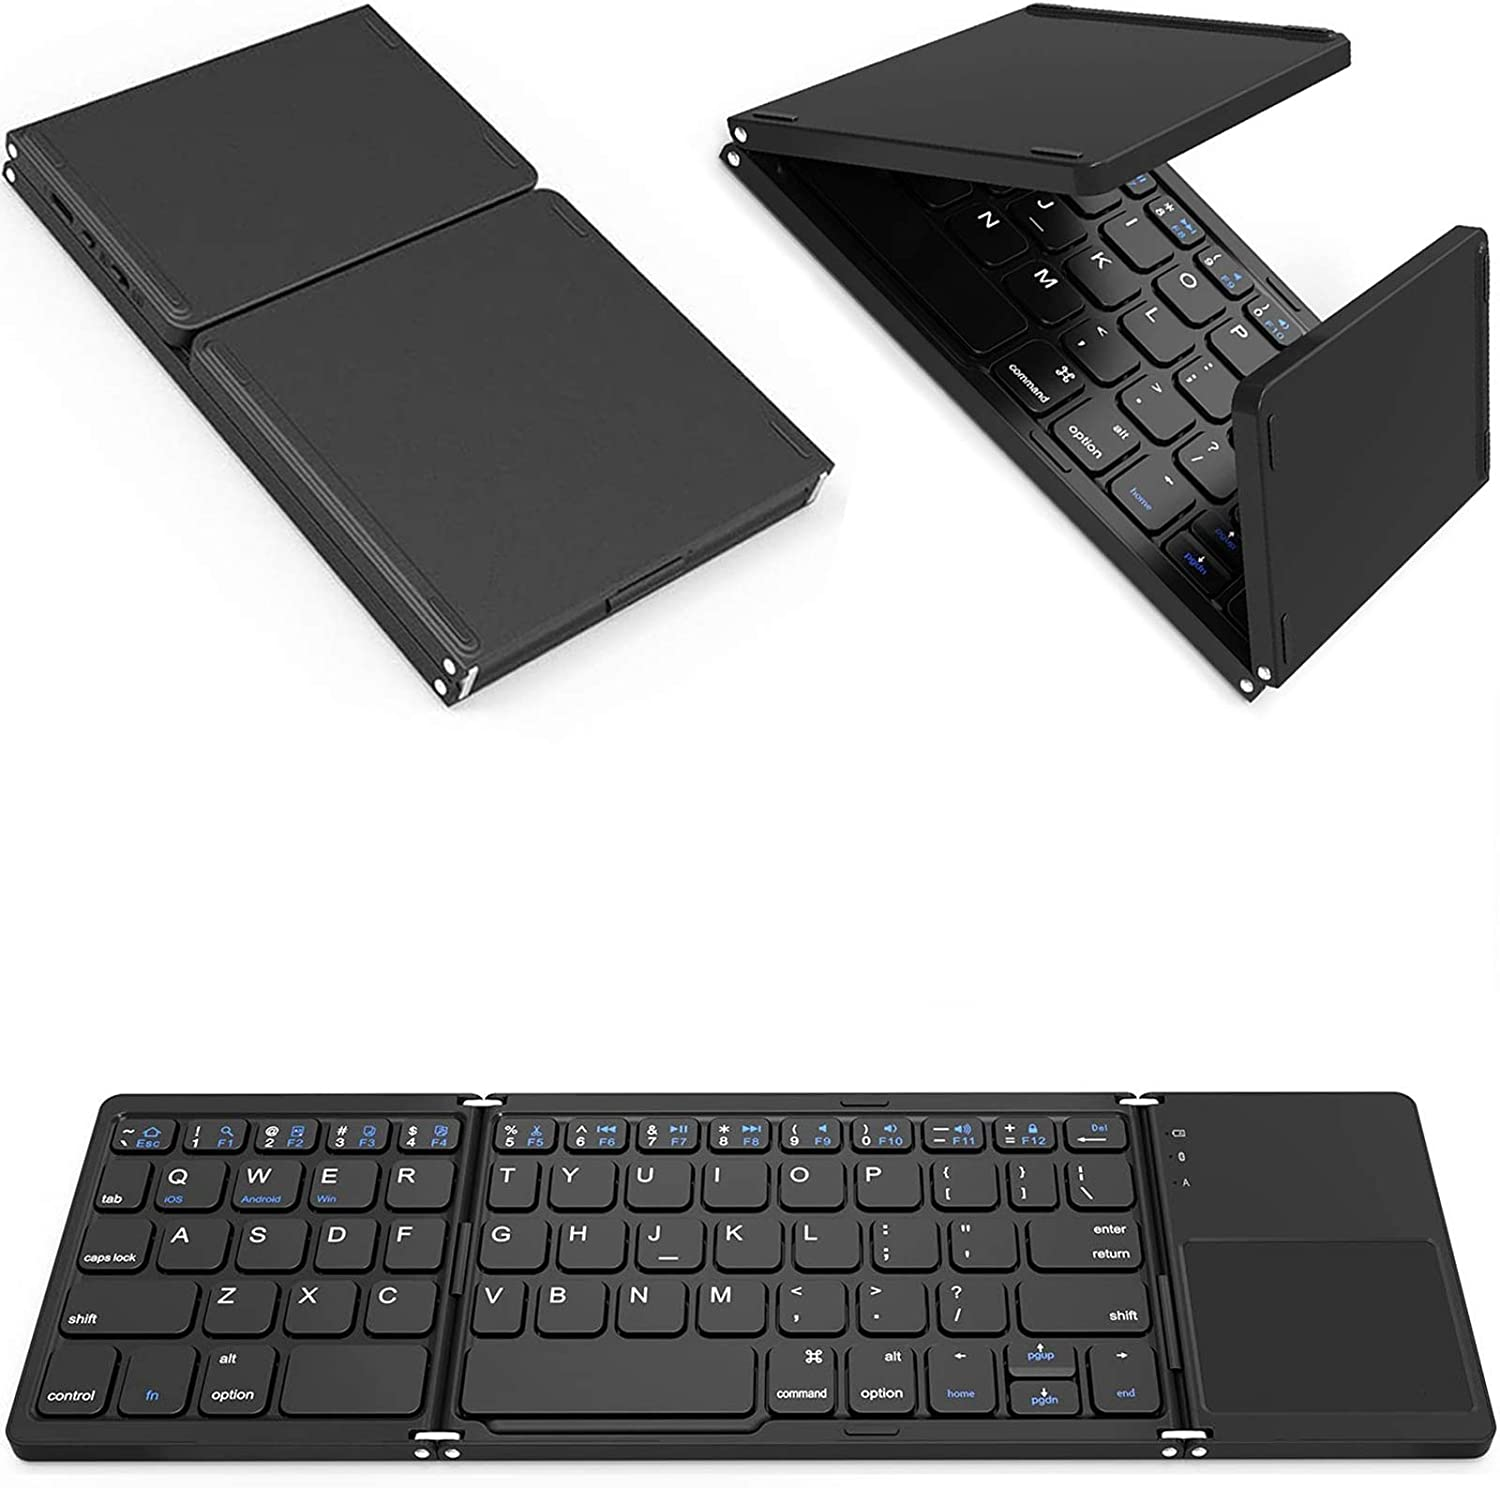 Tek Styz Foldable Bluetooth Keyboard Works for Lenovo Yoga Tablet 2 8-inch (Android) Dual Mode Bluetooth & USB Wired Rechargable Portable Mini BT Wireless Keyboard with Touchpad Mouse!